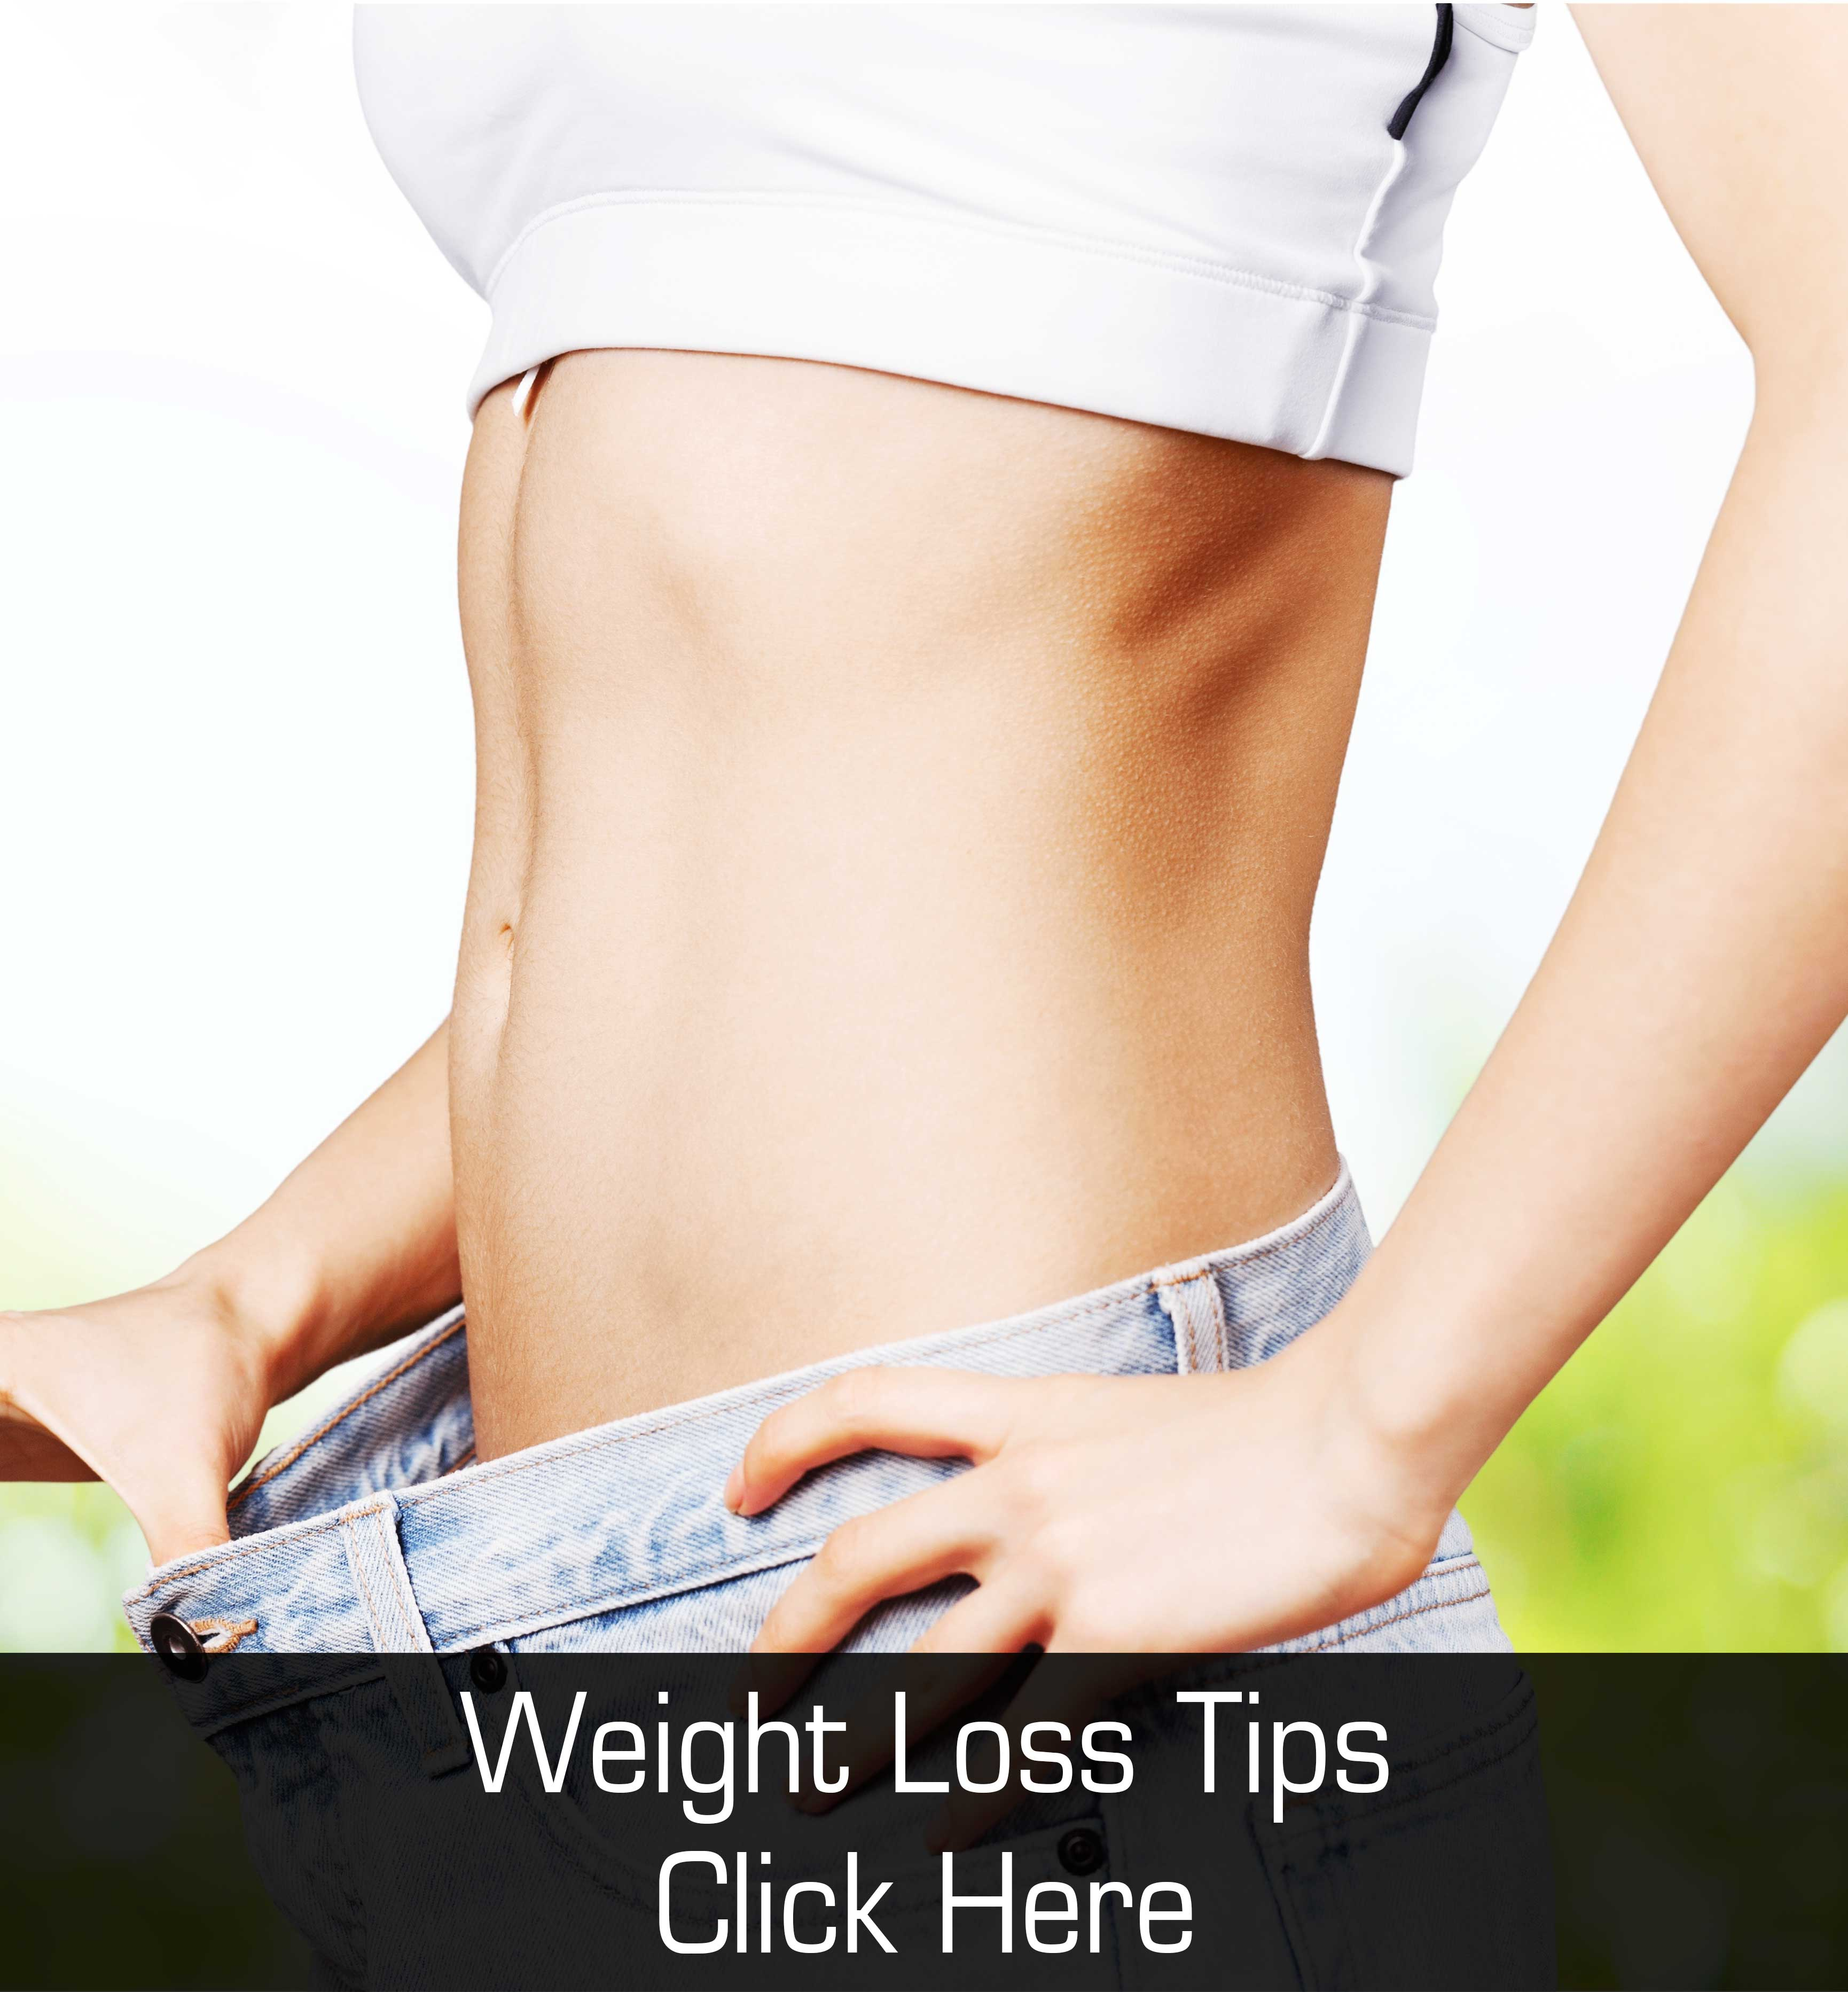 Lose weight picture editor picture 9